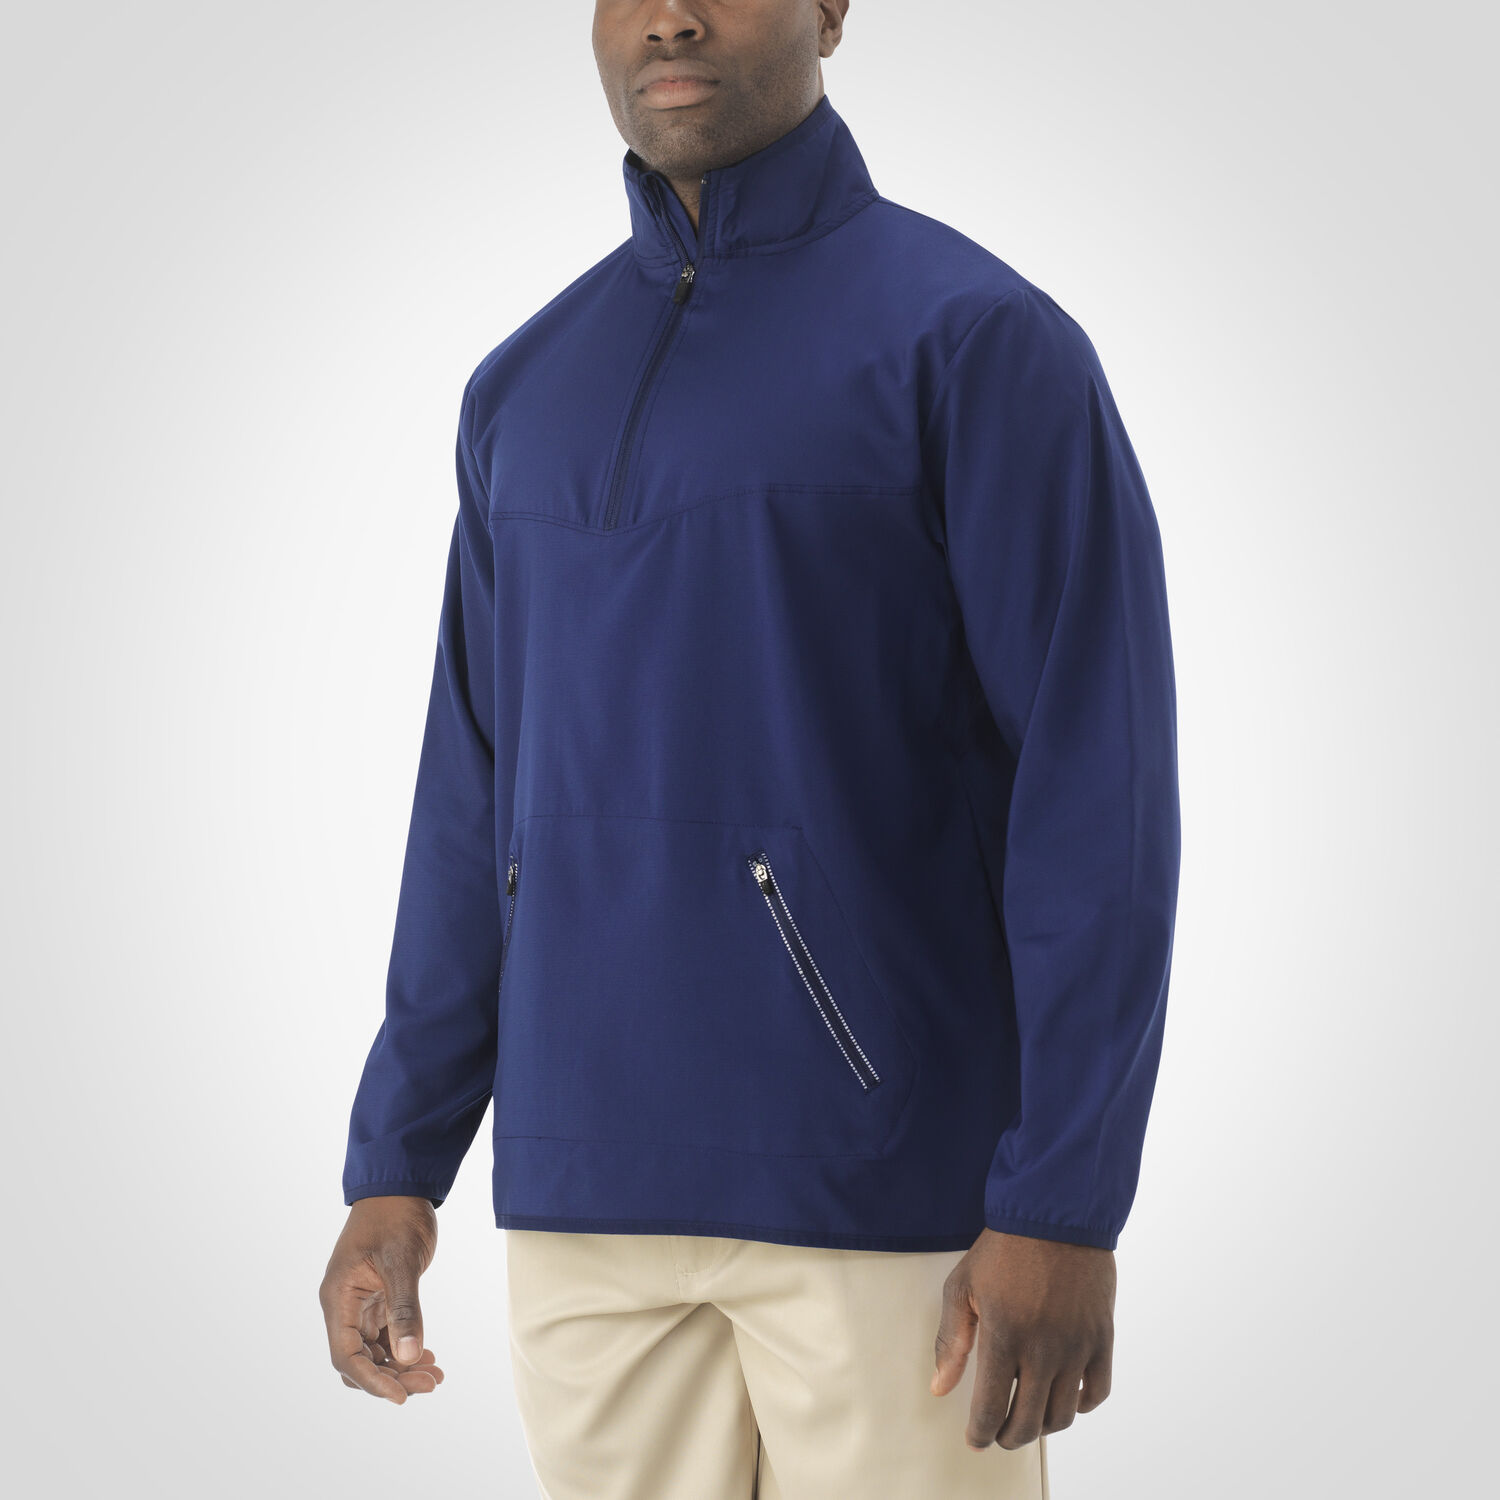 Men's Pullovers & Sports Jackets | Russell Athletic